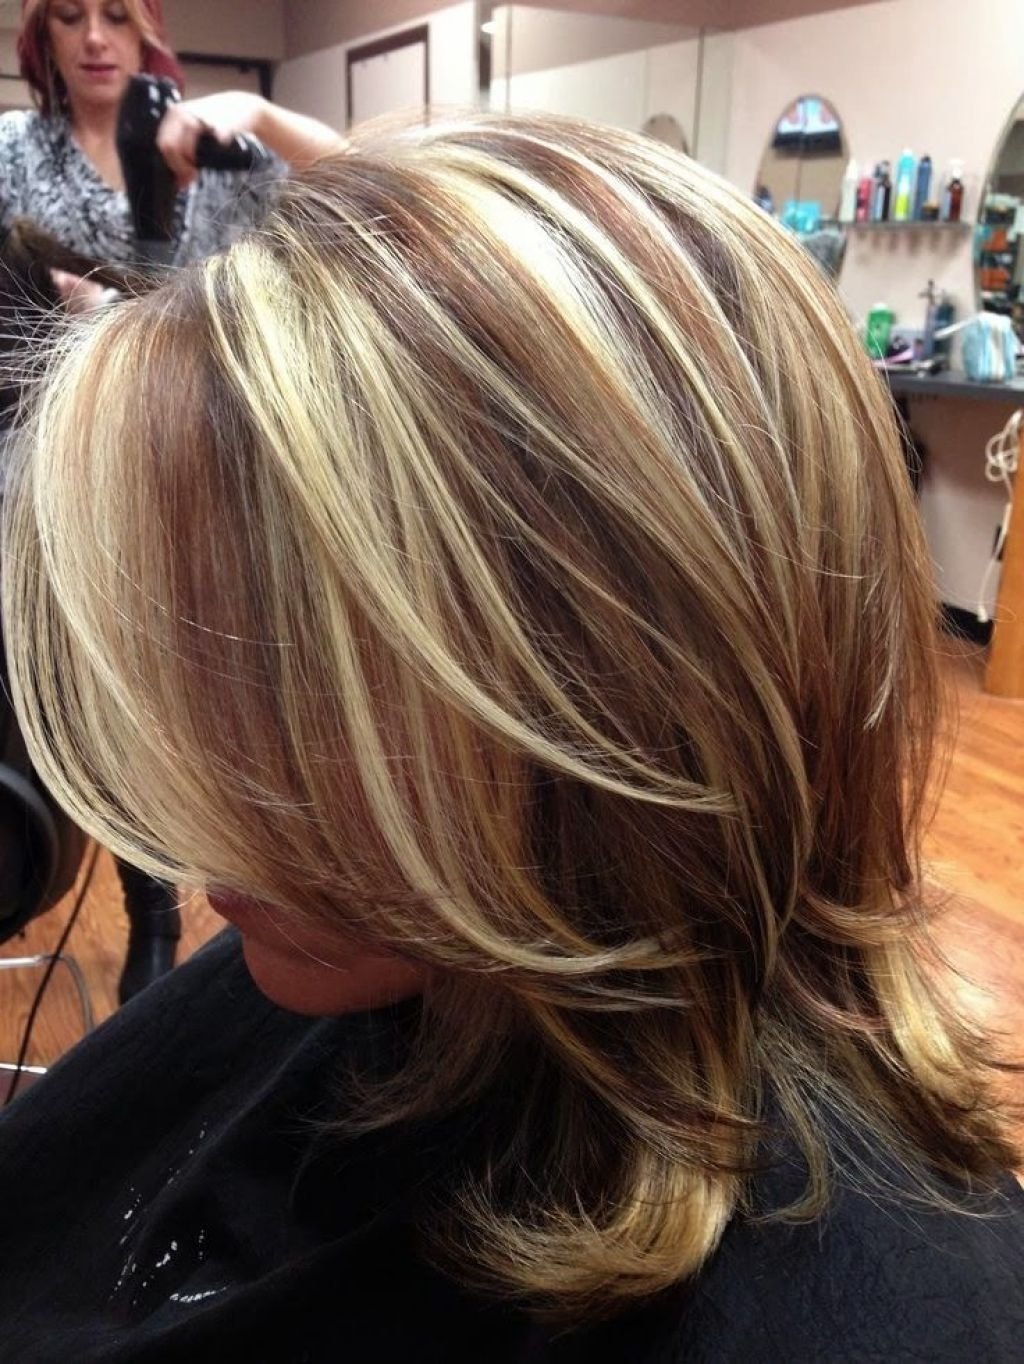 10 Stunning Hair Color With Highlights Ideas highlights and lowlights ideas 4 hair color highlight and lowlight 3 2020